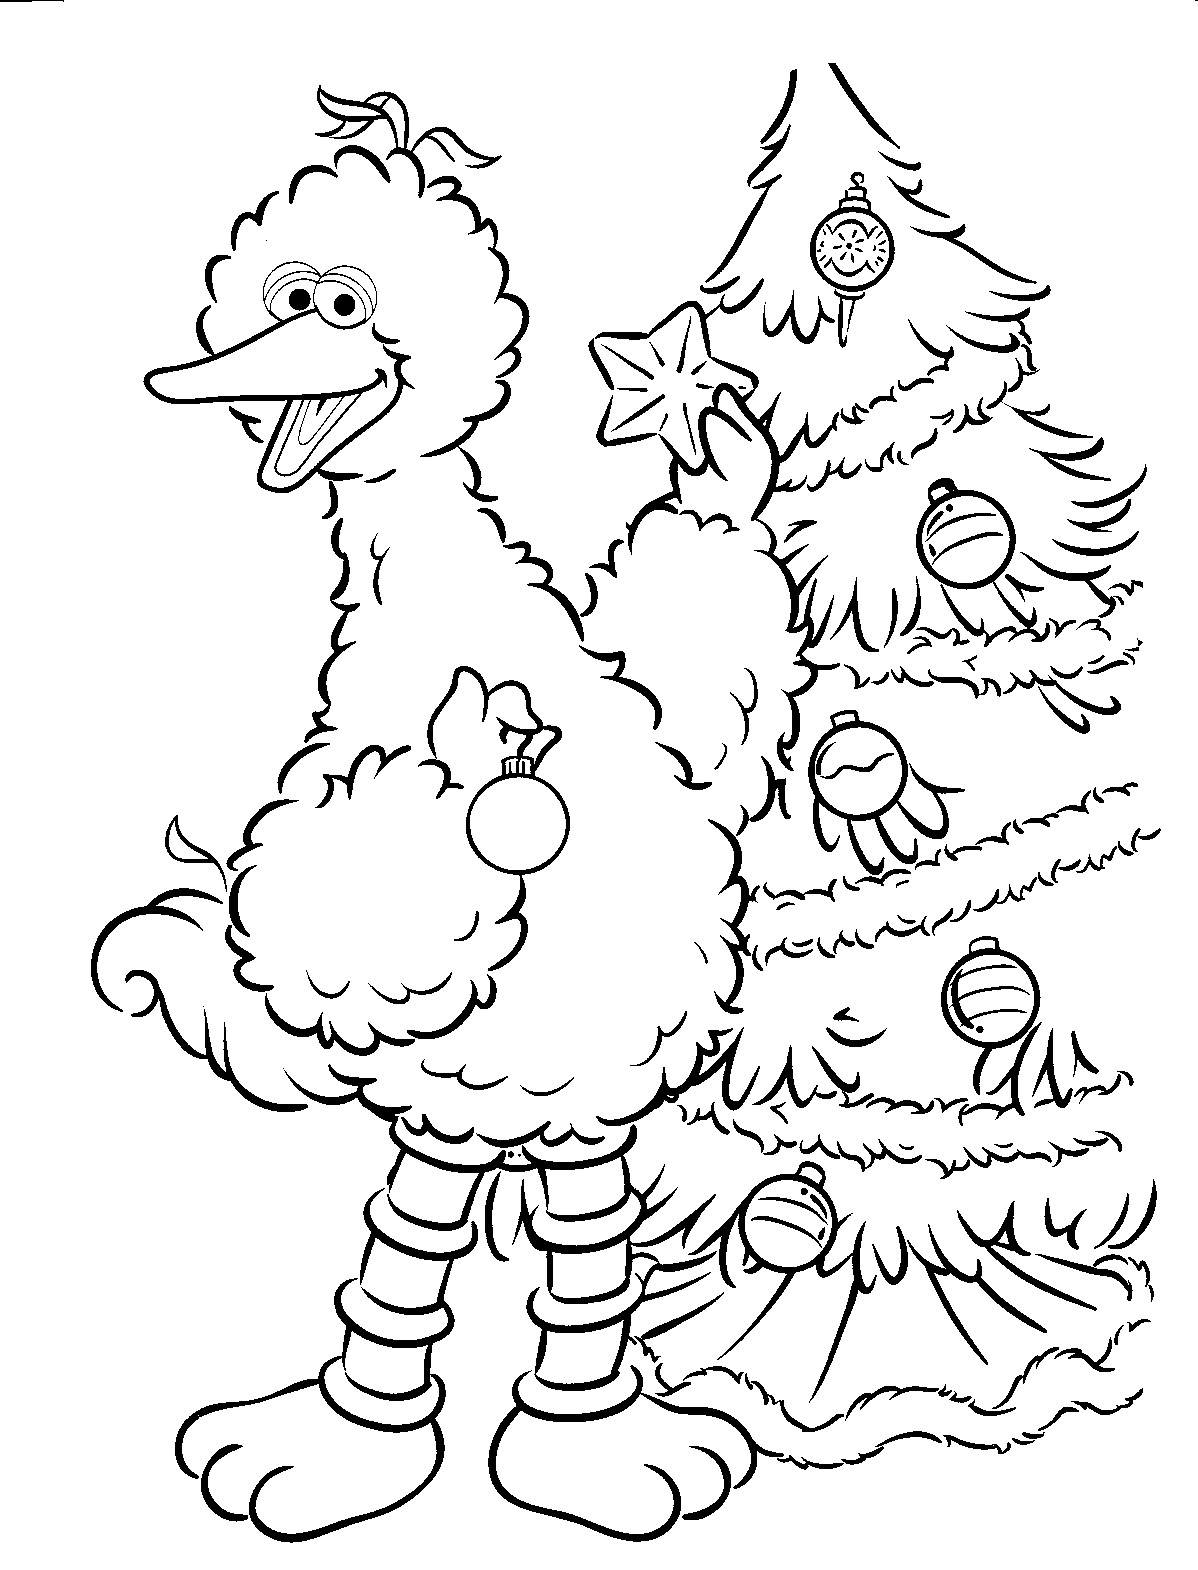 1198x1570 Sesame Street Coloring Pages For Kids Incredible Printable Acpra